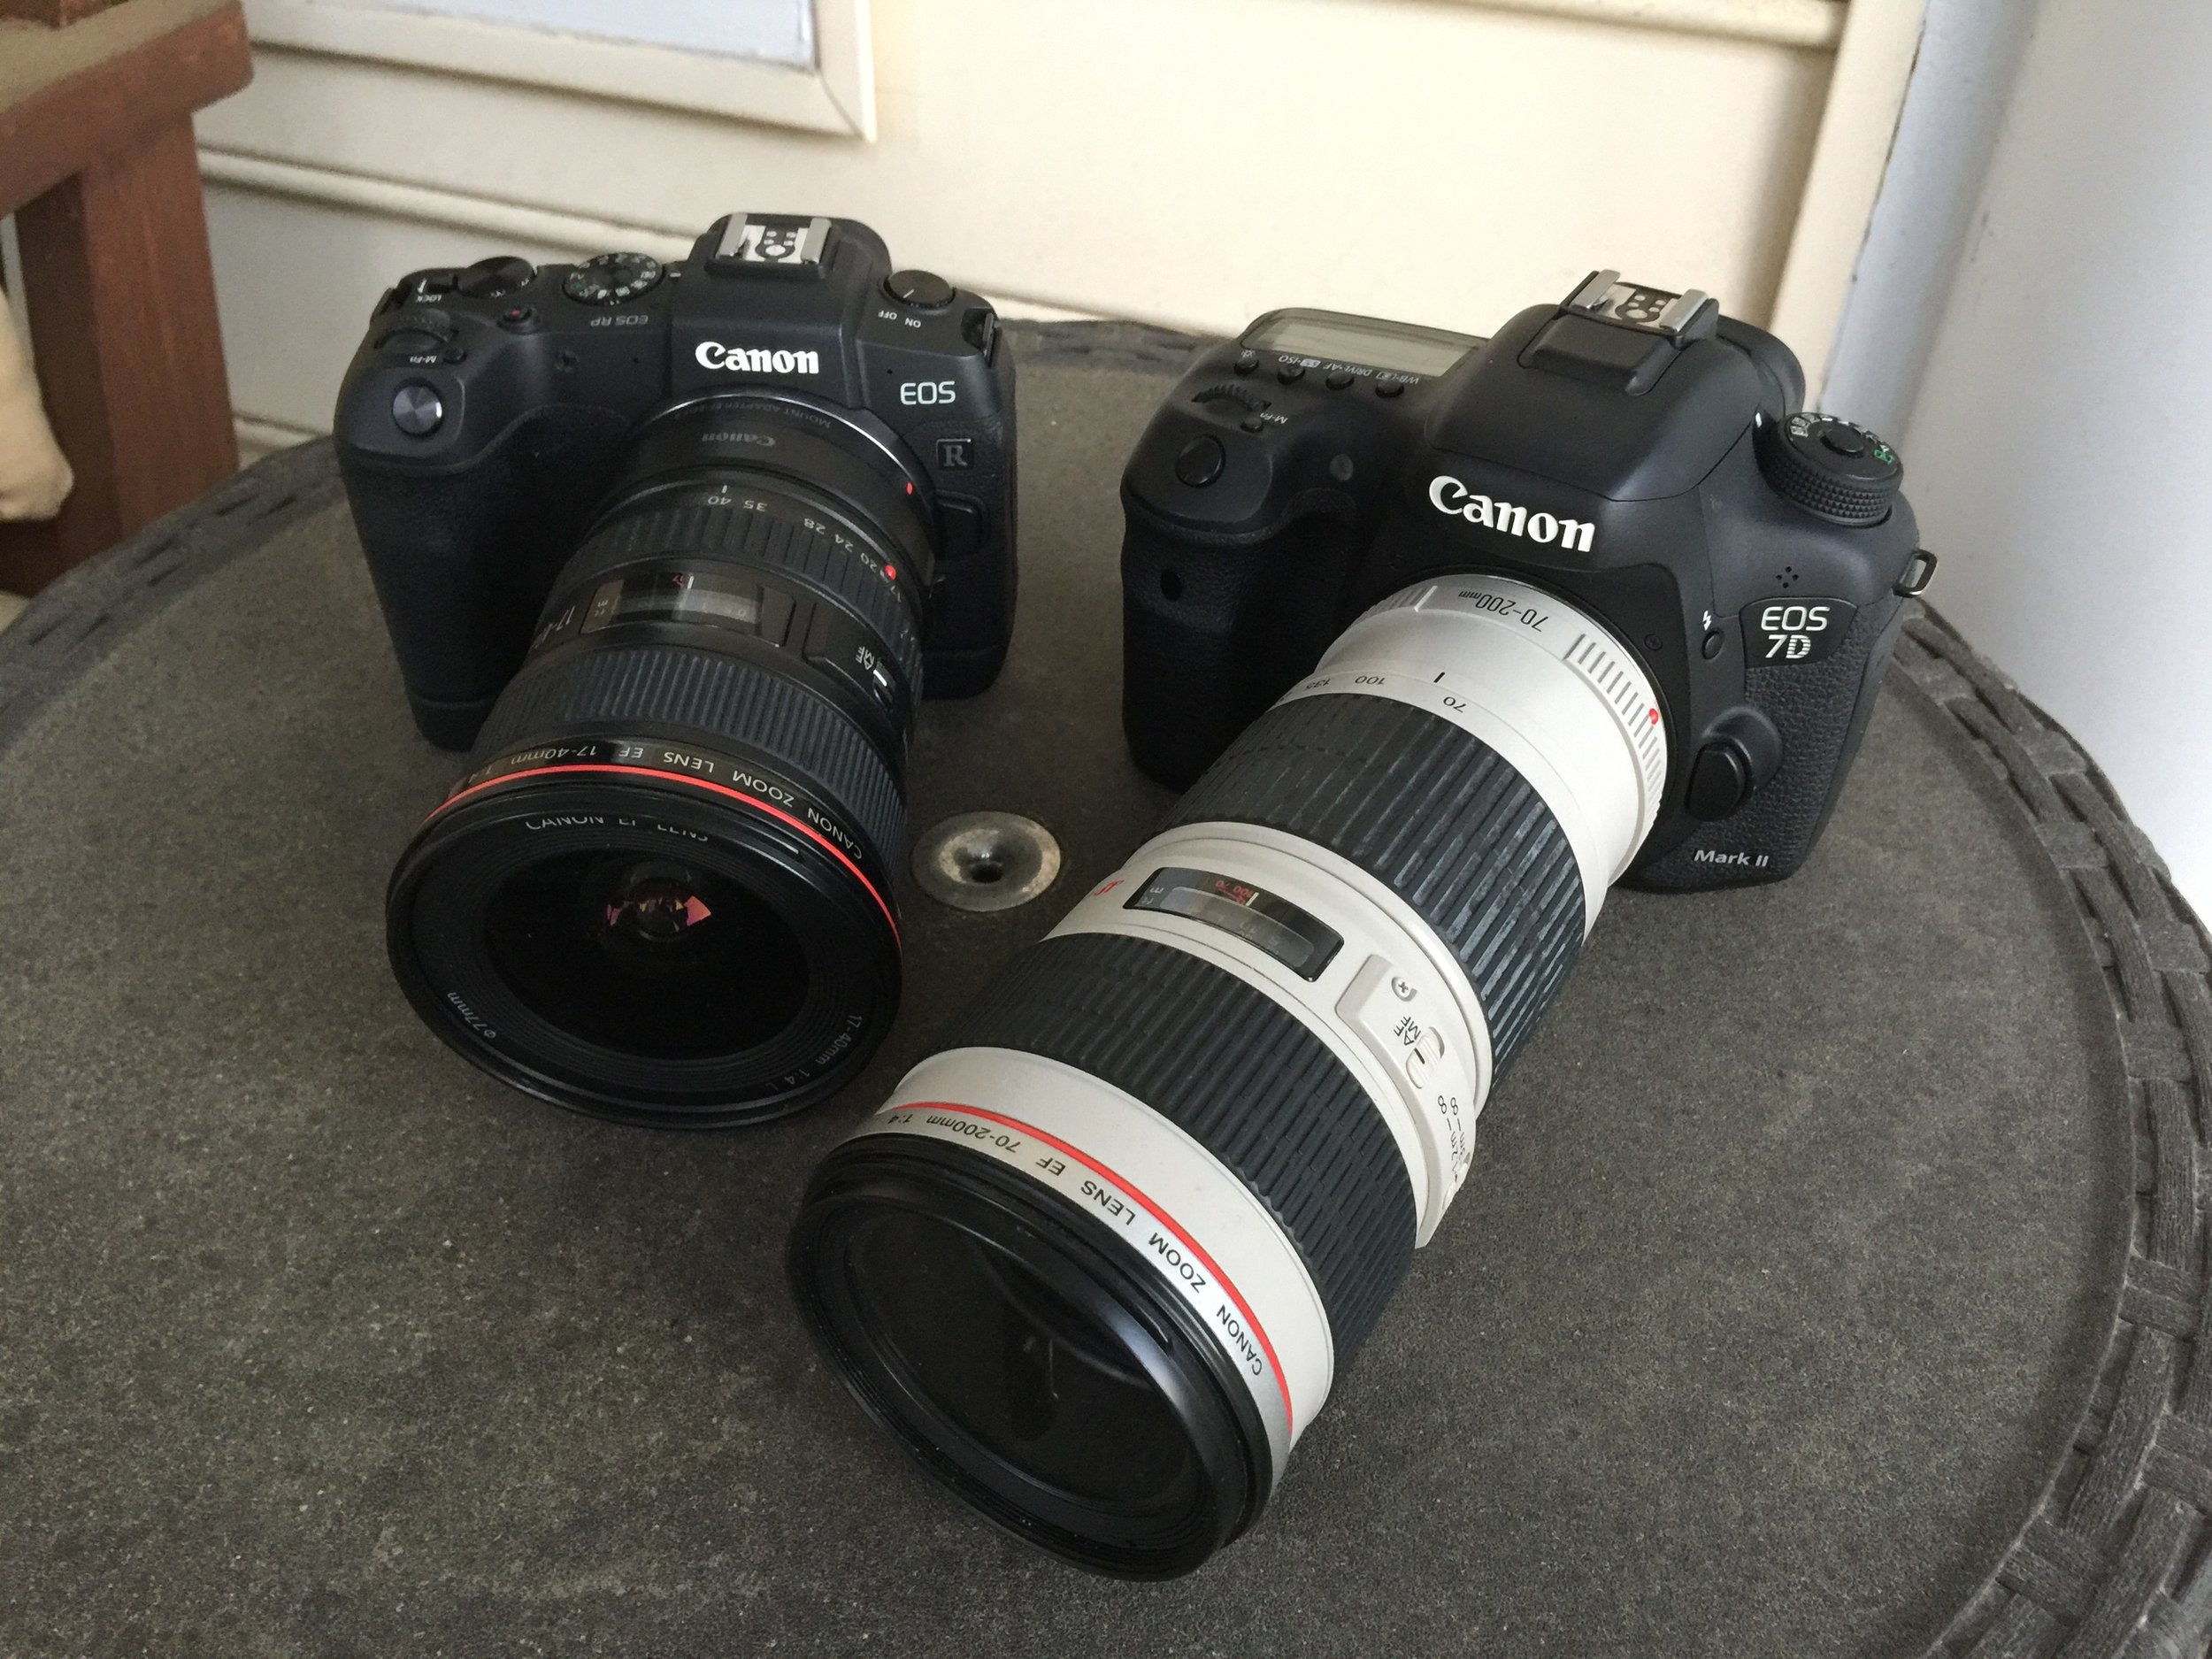 I could have just brought the Canon 7D Mark II, but wanted to play with the new RP also!